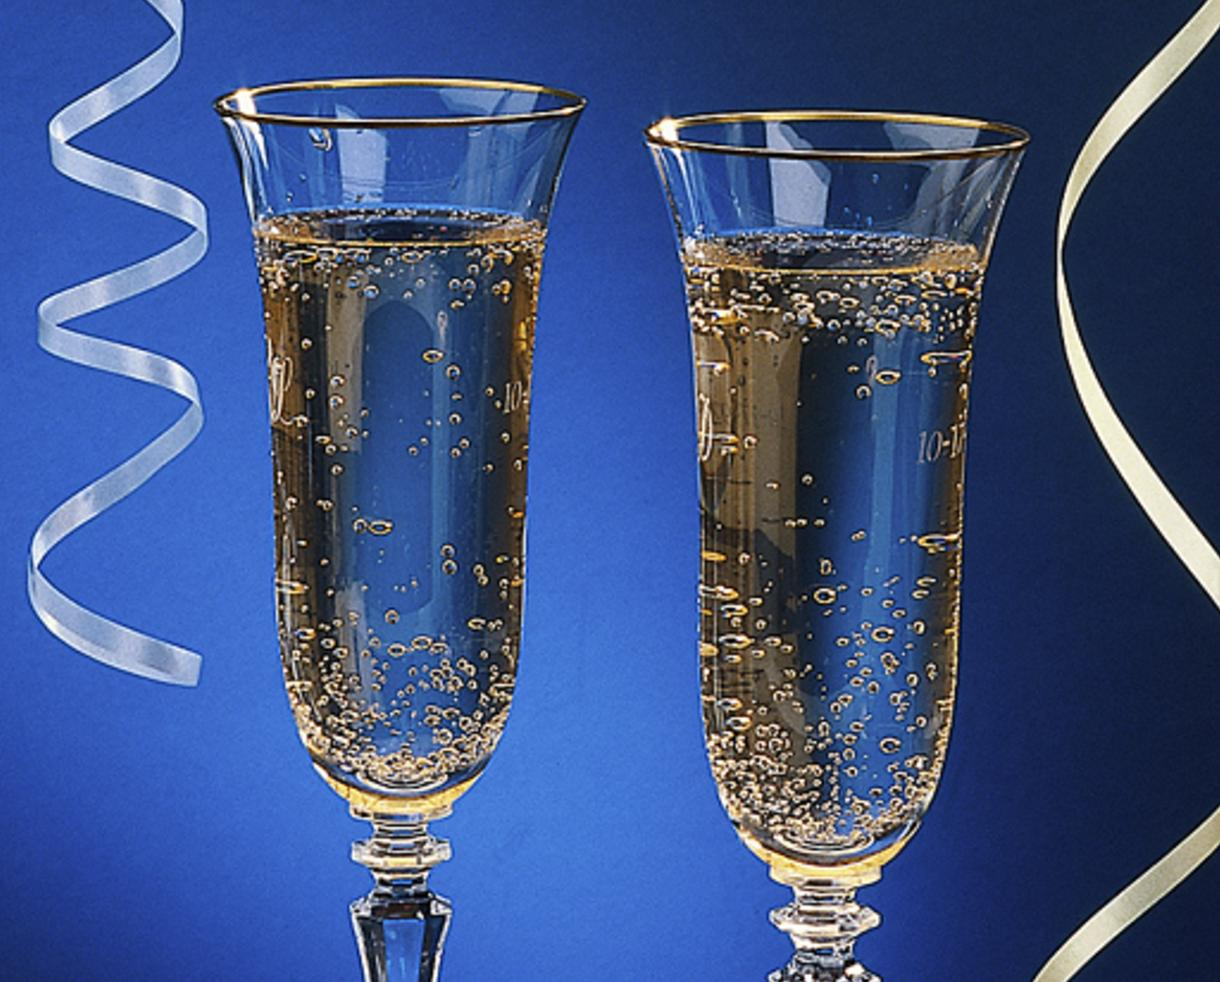 $30 Per Person for Quench Family Friendly New Year's Eve Dinner and Festivities at Quench in Rockville, MD ($45 value - 34% off)